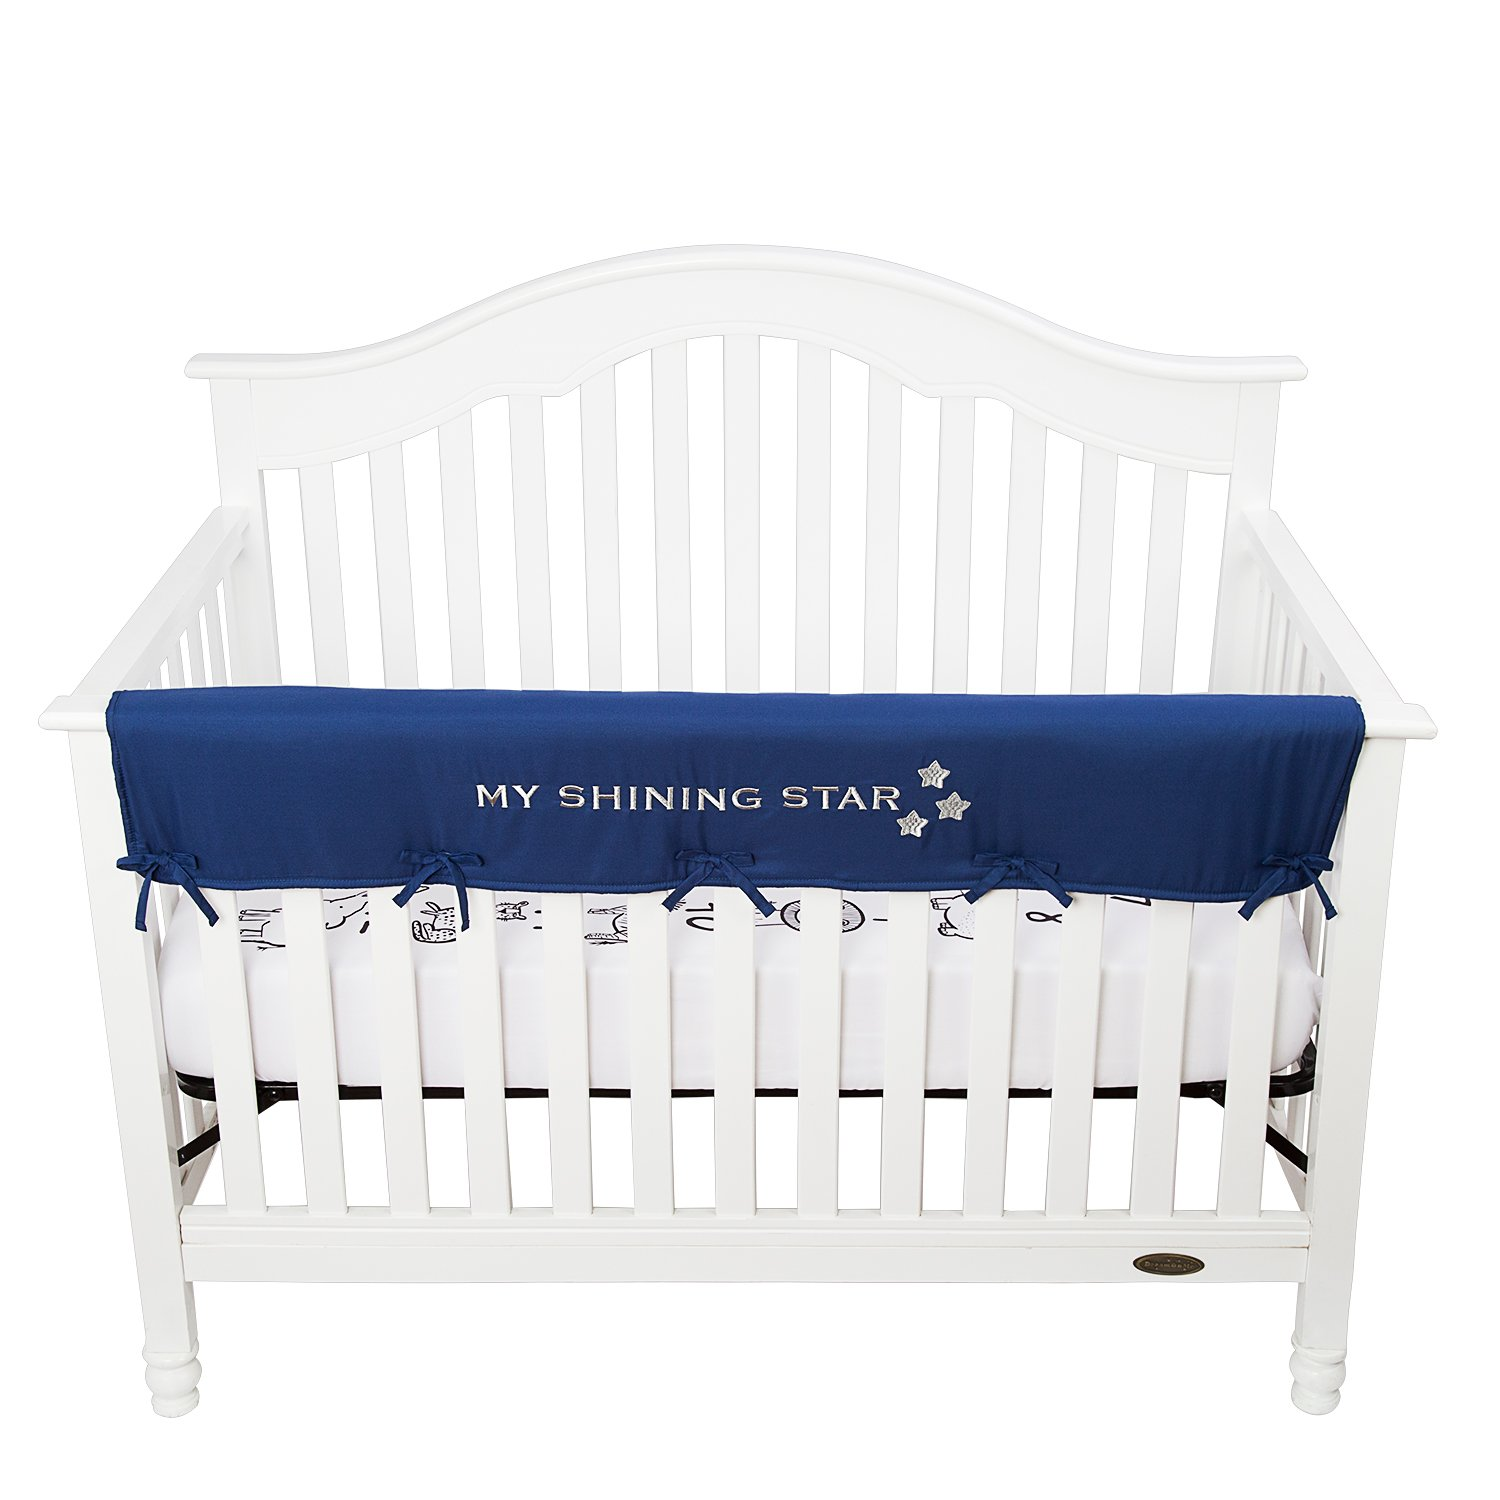 Tillyou Personalized Padded Baby Crib Rail Cover Protector